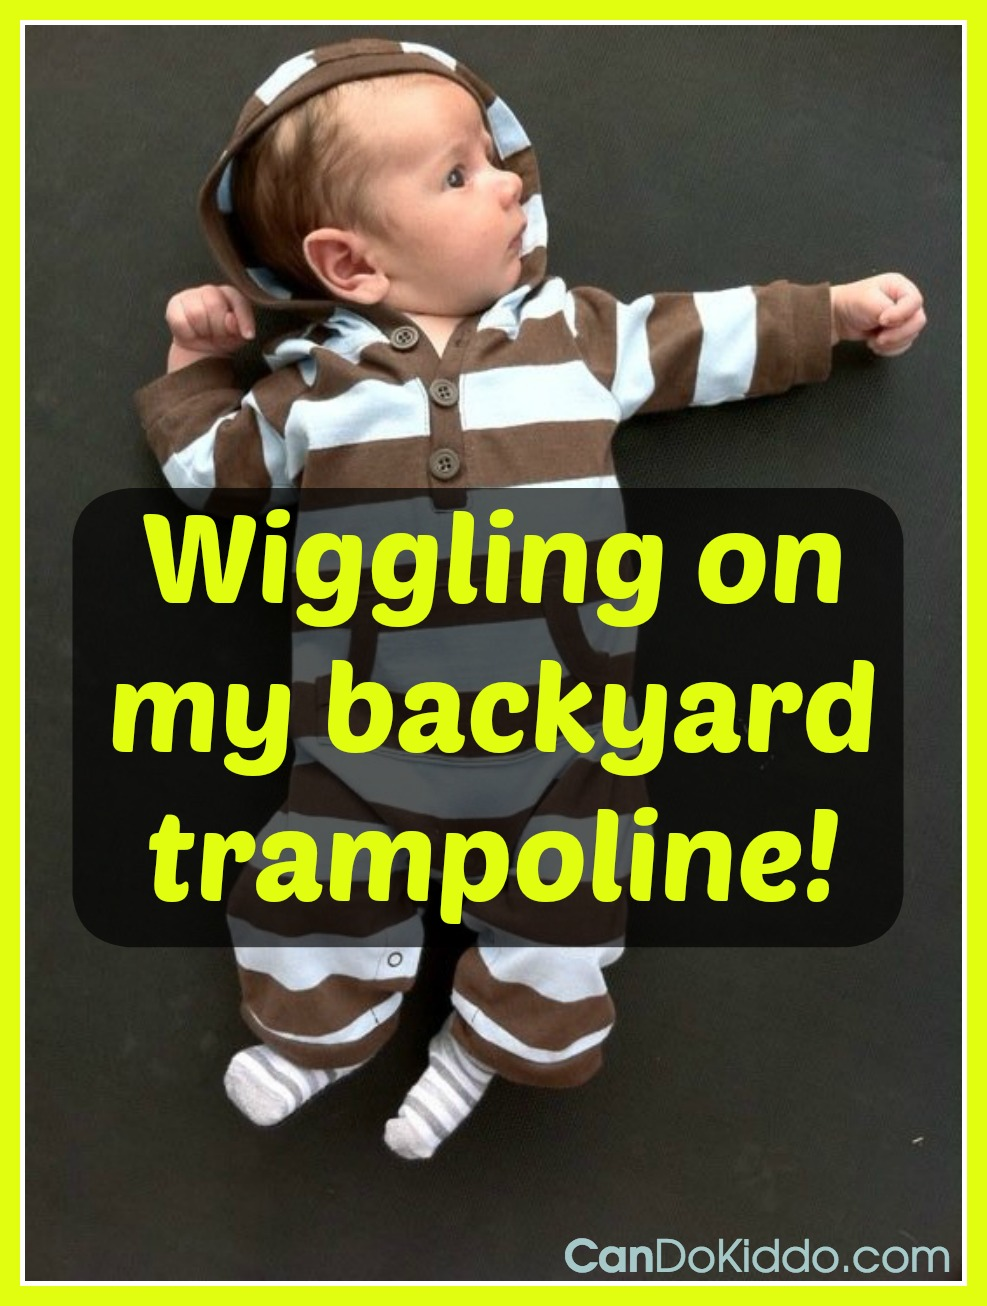 Play for newborns : wiggling on a backyard trampoline promotes body awareness, strengthening and stretching essential for crawling later! CanDo Kiddo